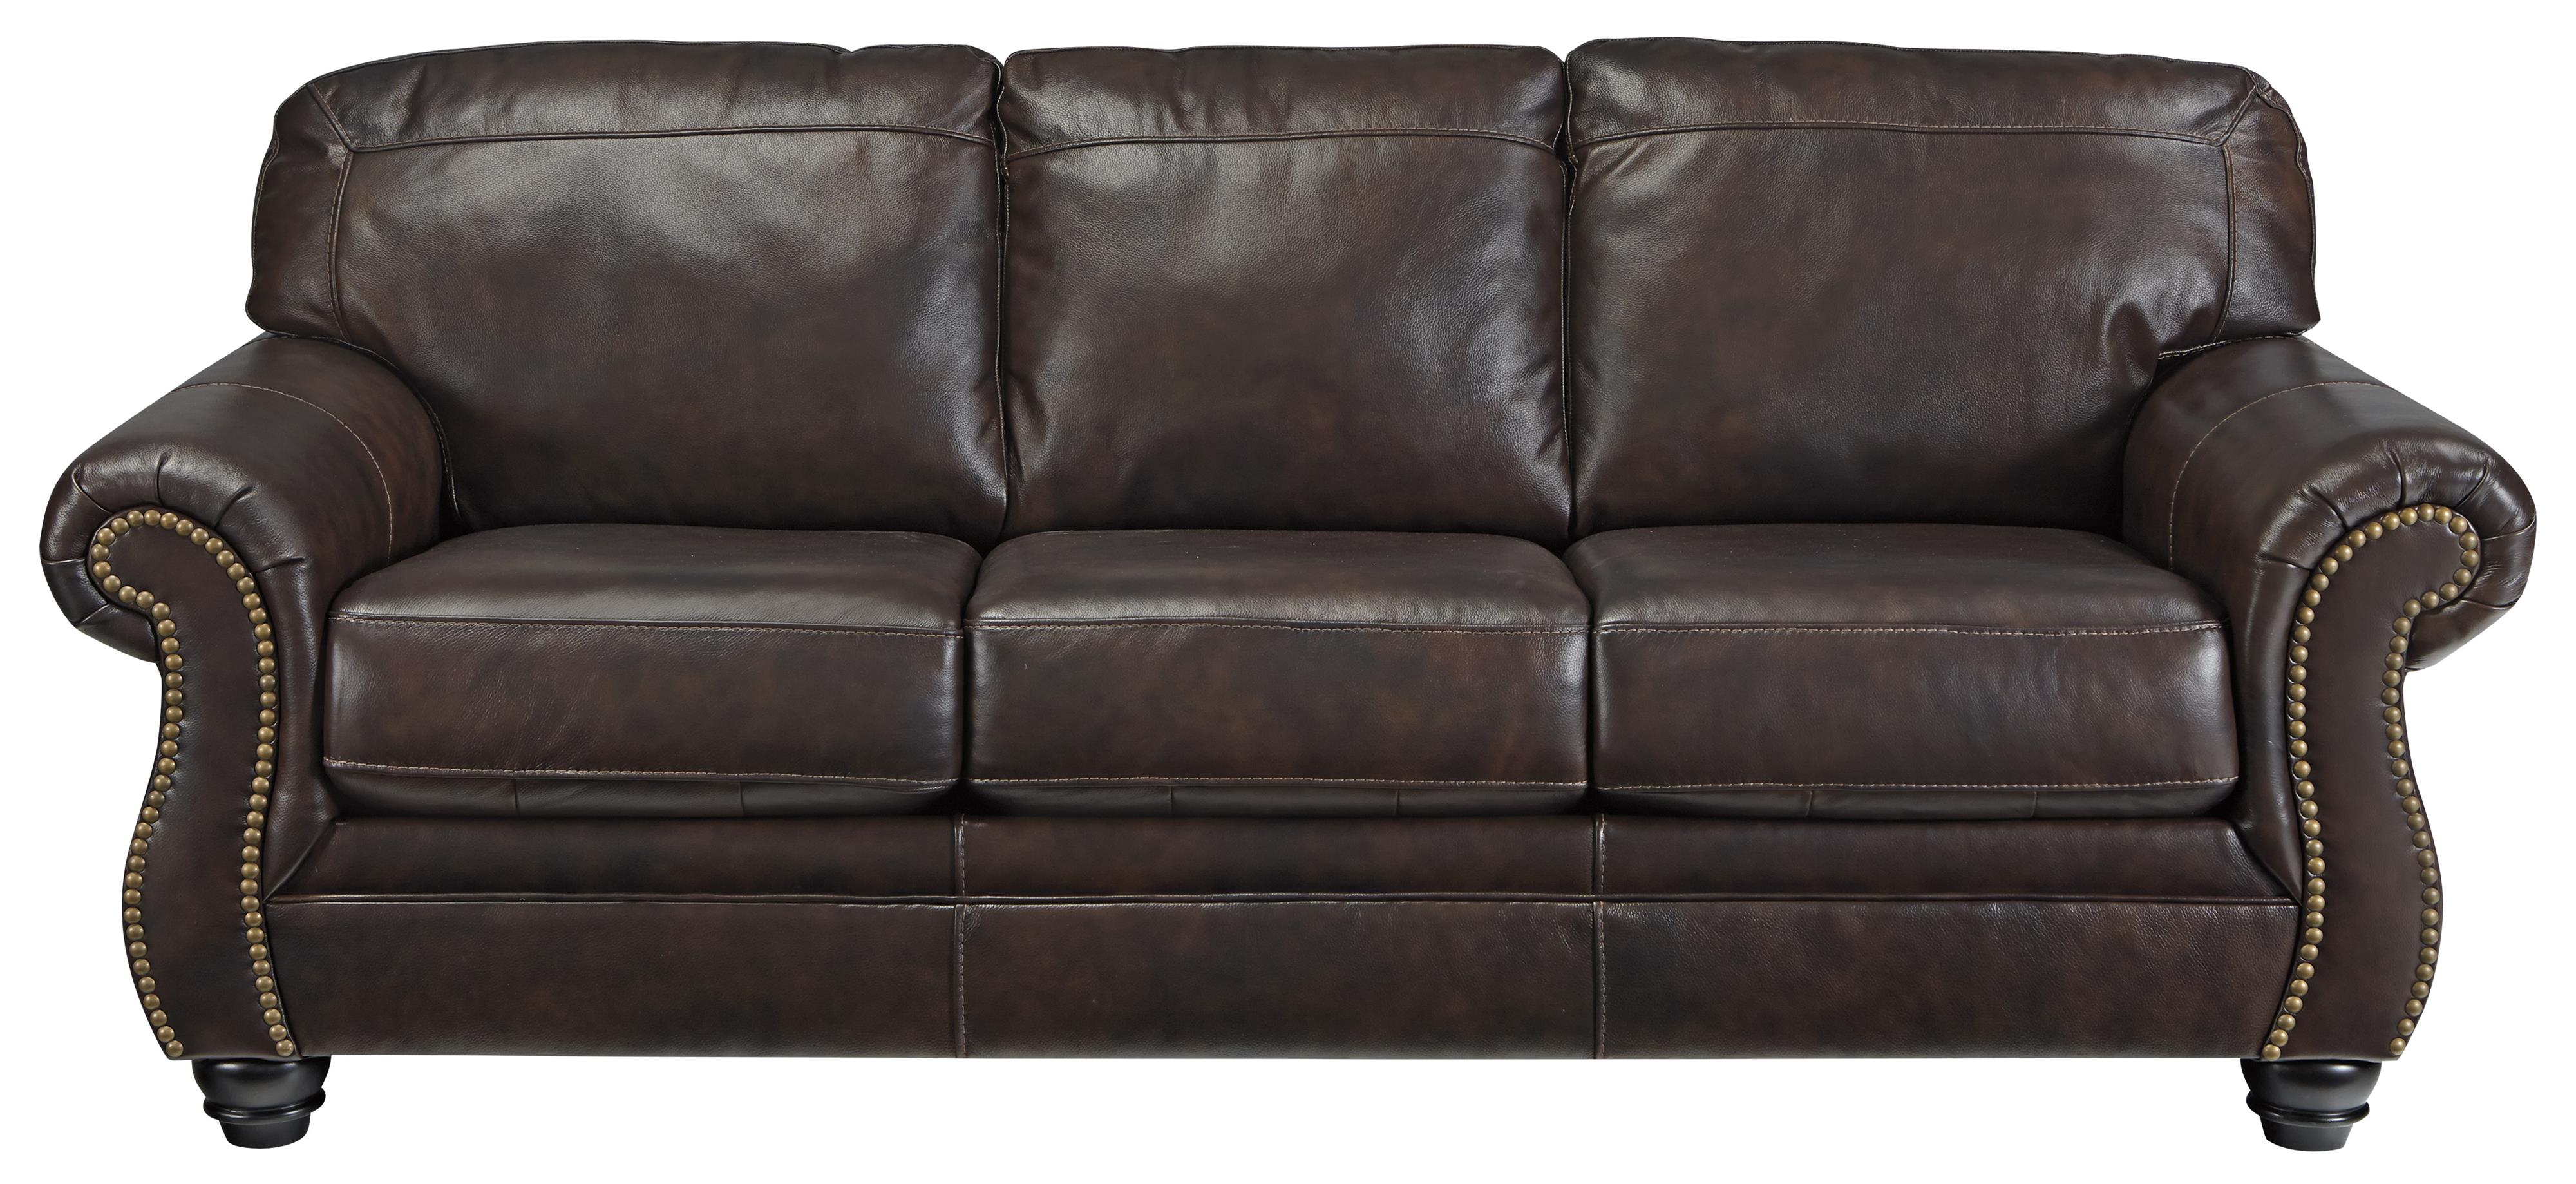 Traditional Leather Match Queen Sofa Sleeper with Rolled ...